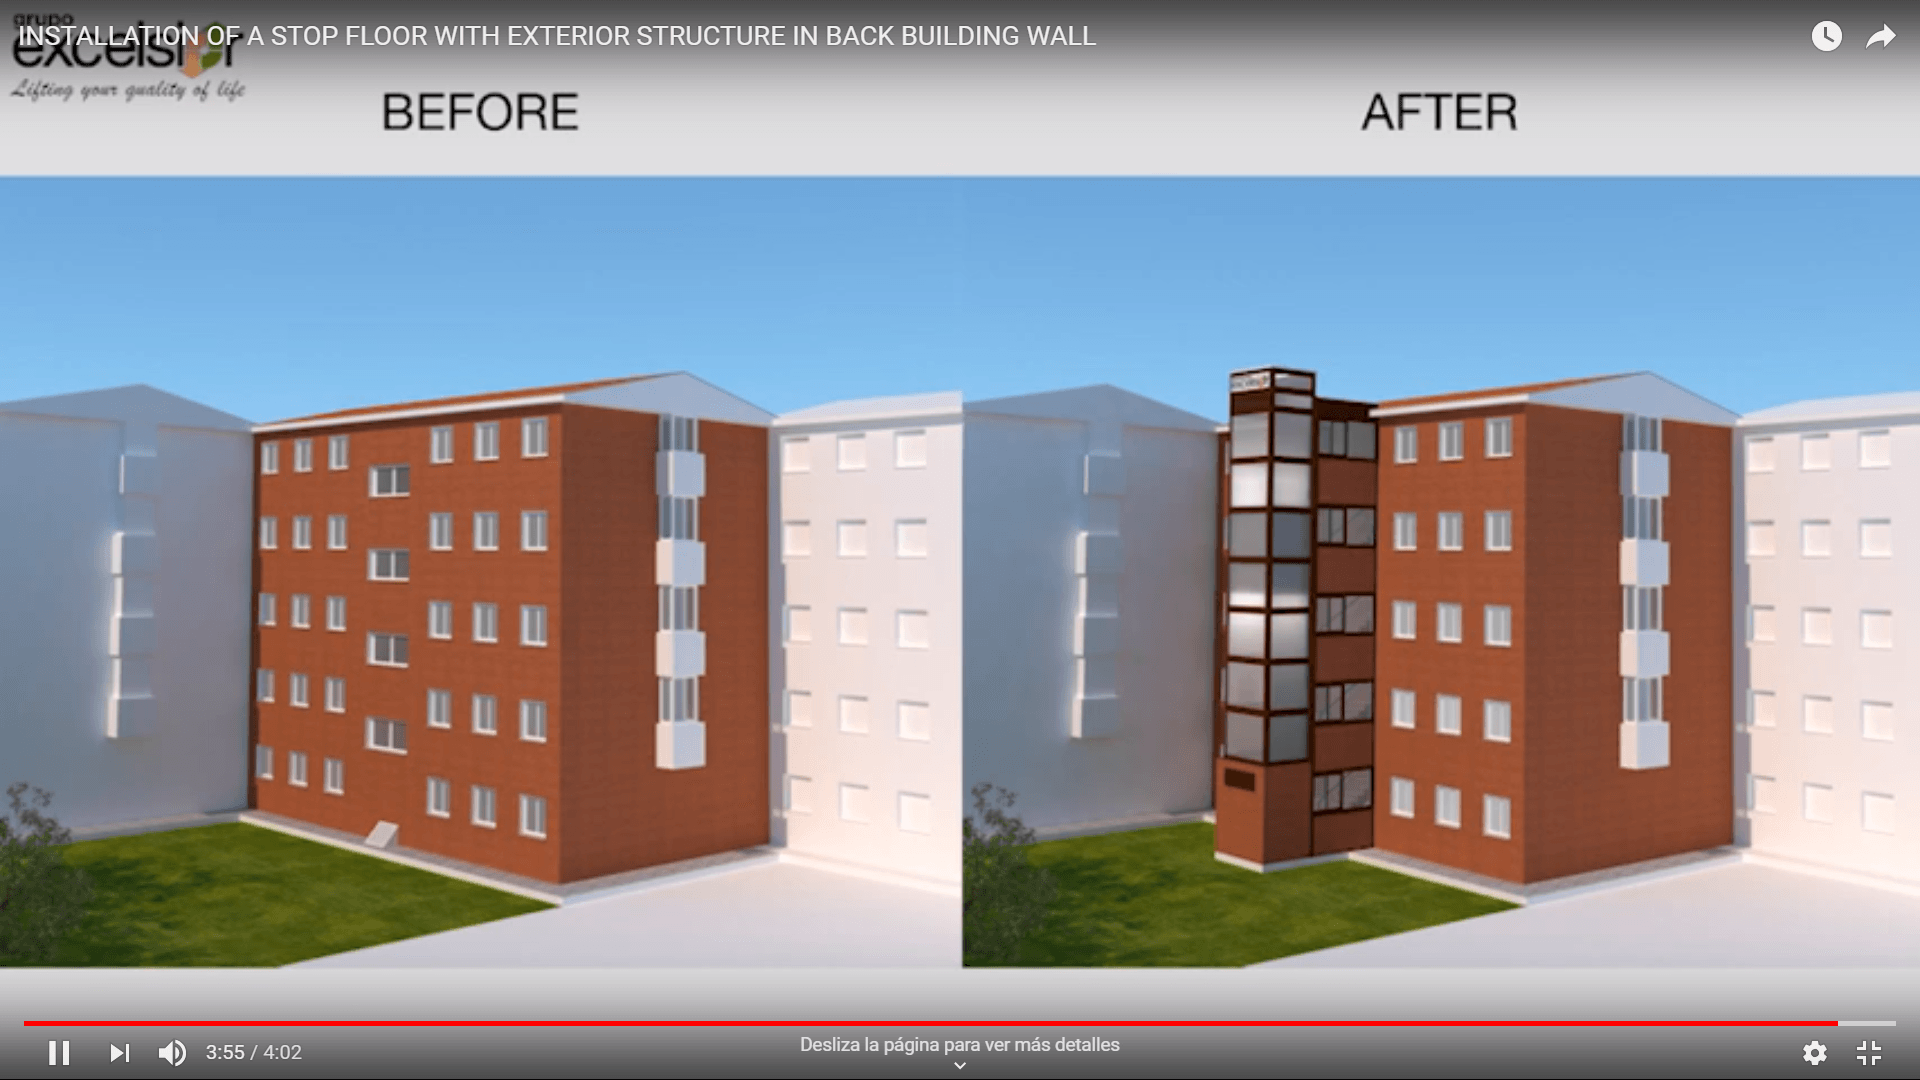 New 3D Video – Back building wall – Stop floor installation with exterior structure